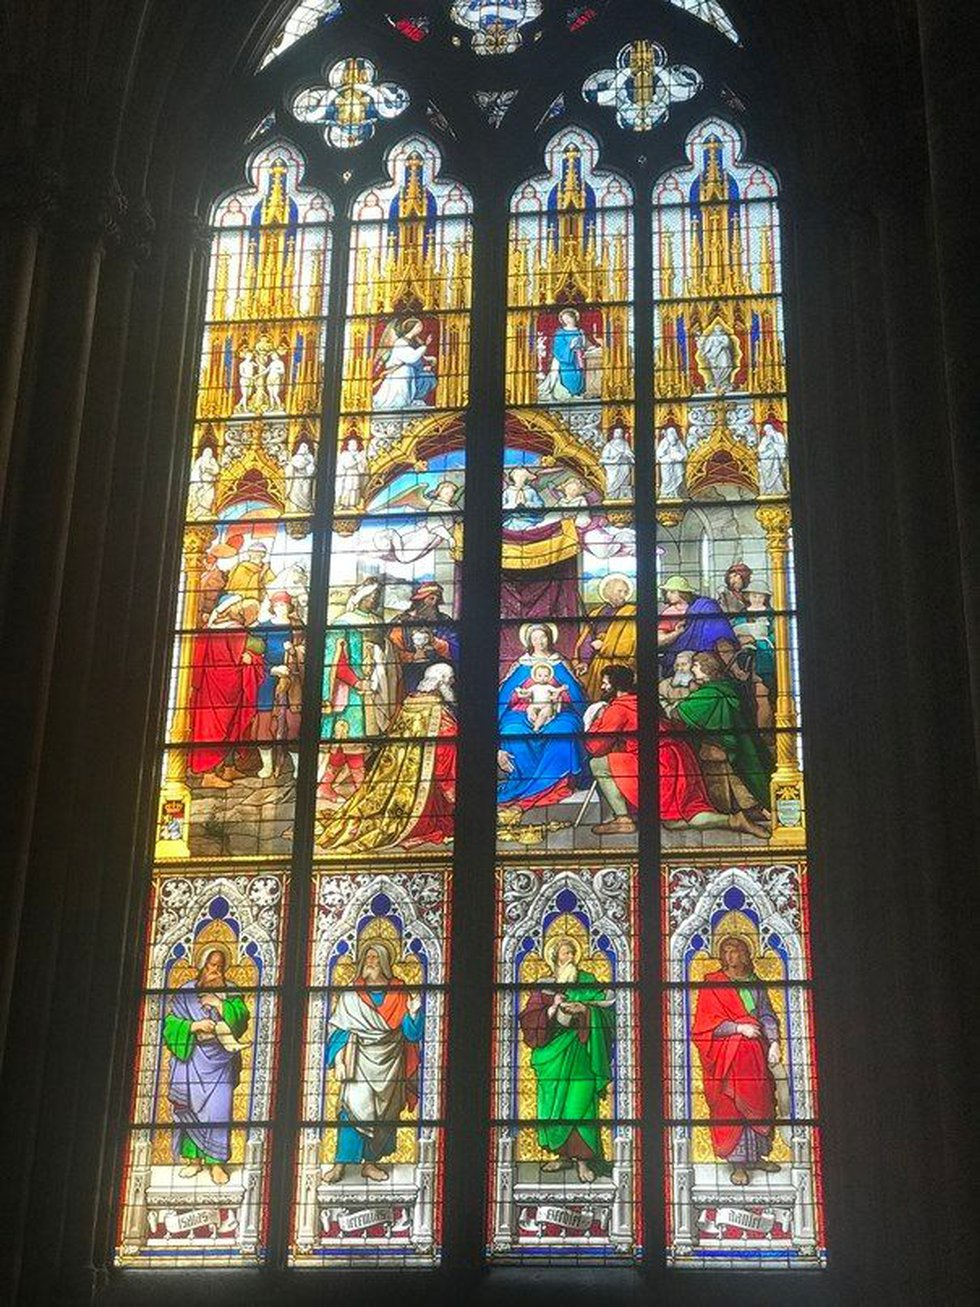 More than 20 thousand tourists file through the cathedral daily, making it Germany's...